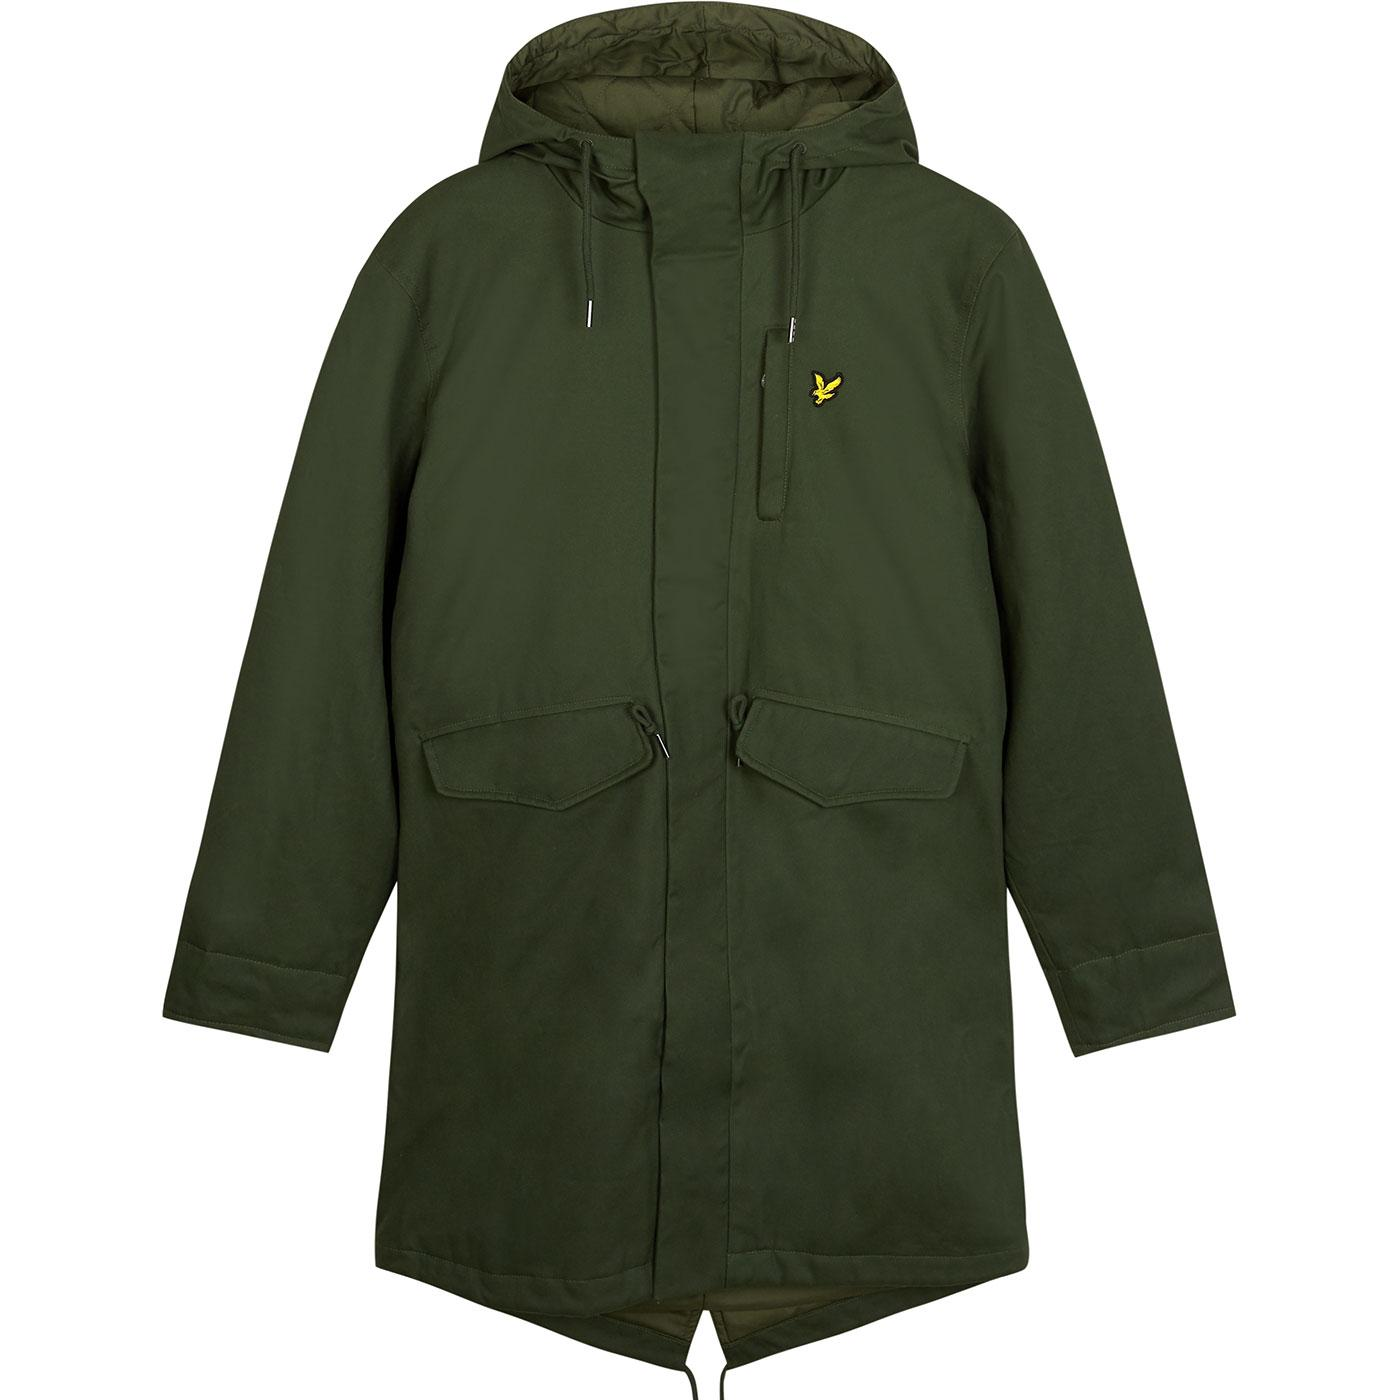 LYLE & SCOTT 60s Mod Waxed Fishtail Parka Jacket G